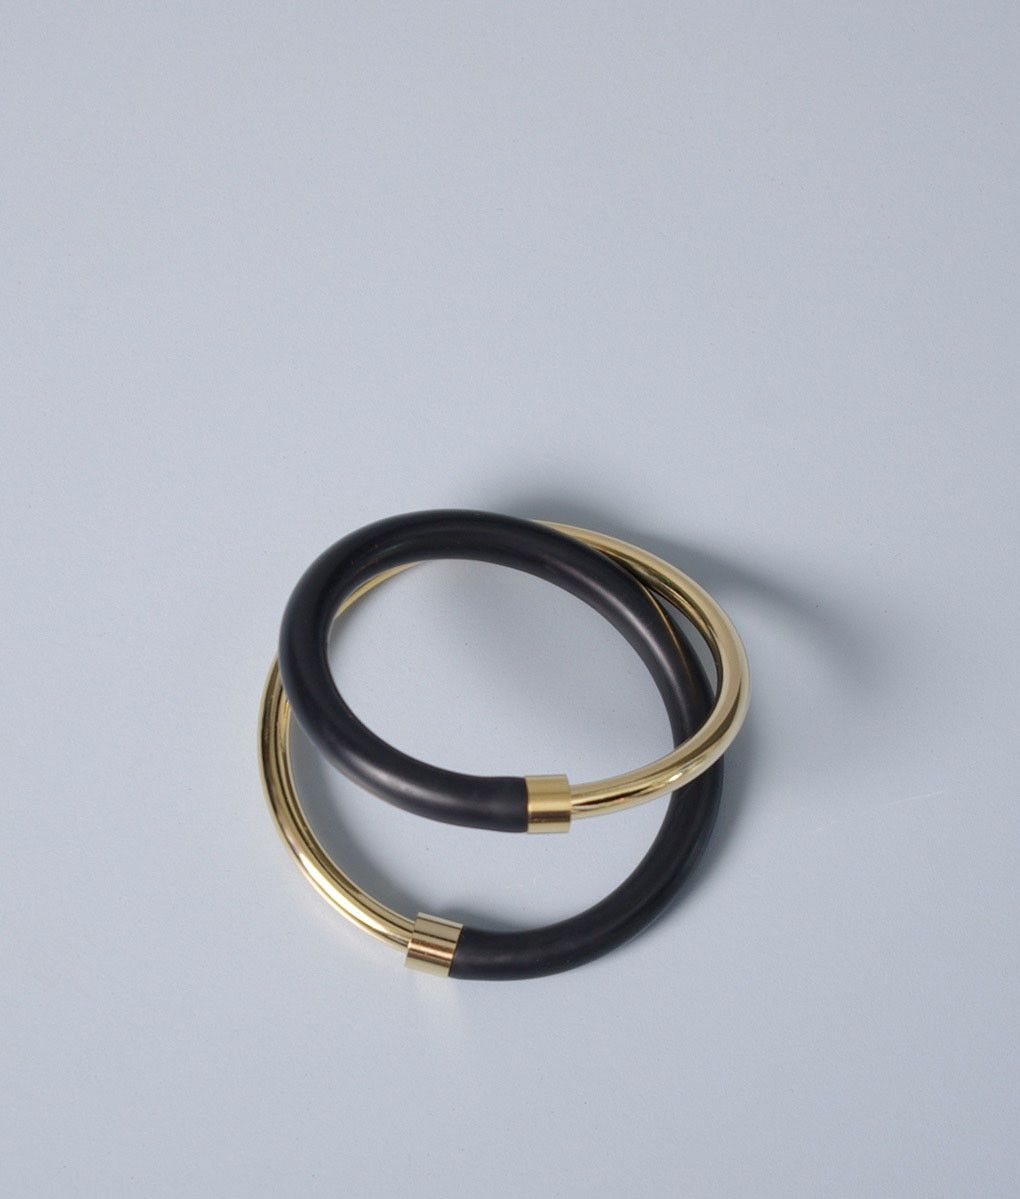 FAUX/real - Infinity Checkout Bracelet, Black/Gold  #Faux #Real #Jewellery #Accessoires #Fashion #Womenswear #Style #Look #Gold #Rubber #Material #Mix